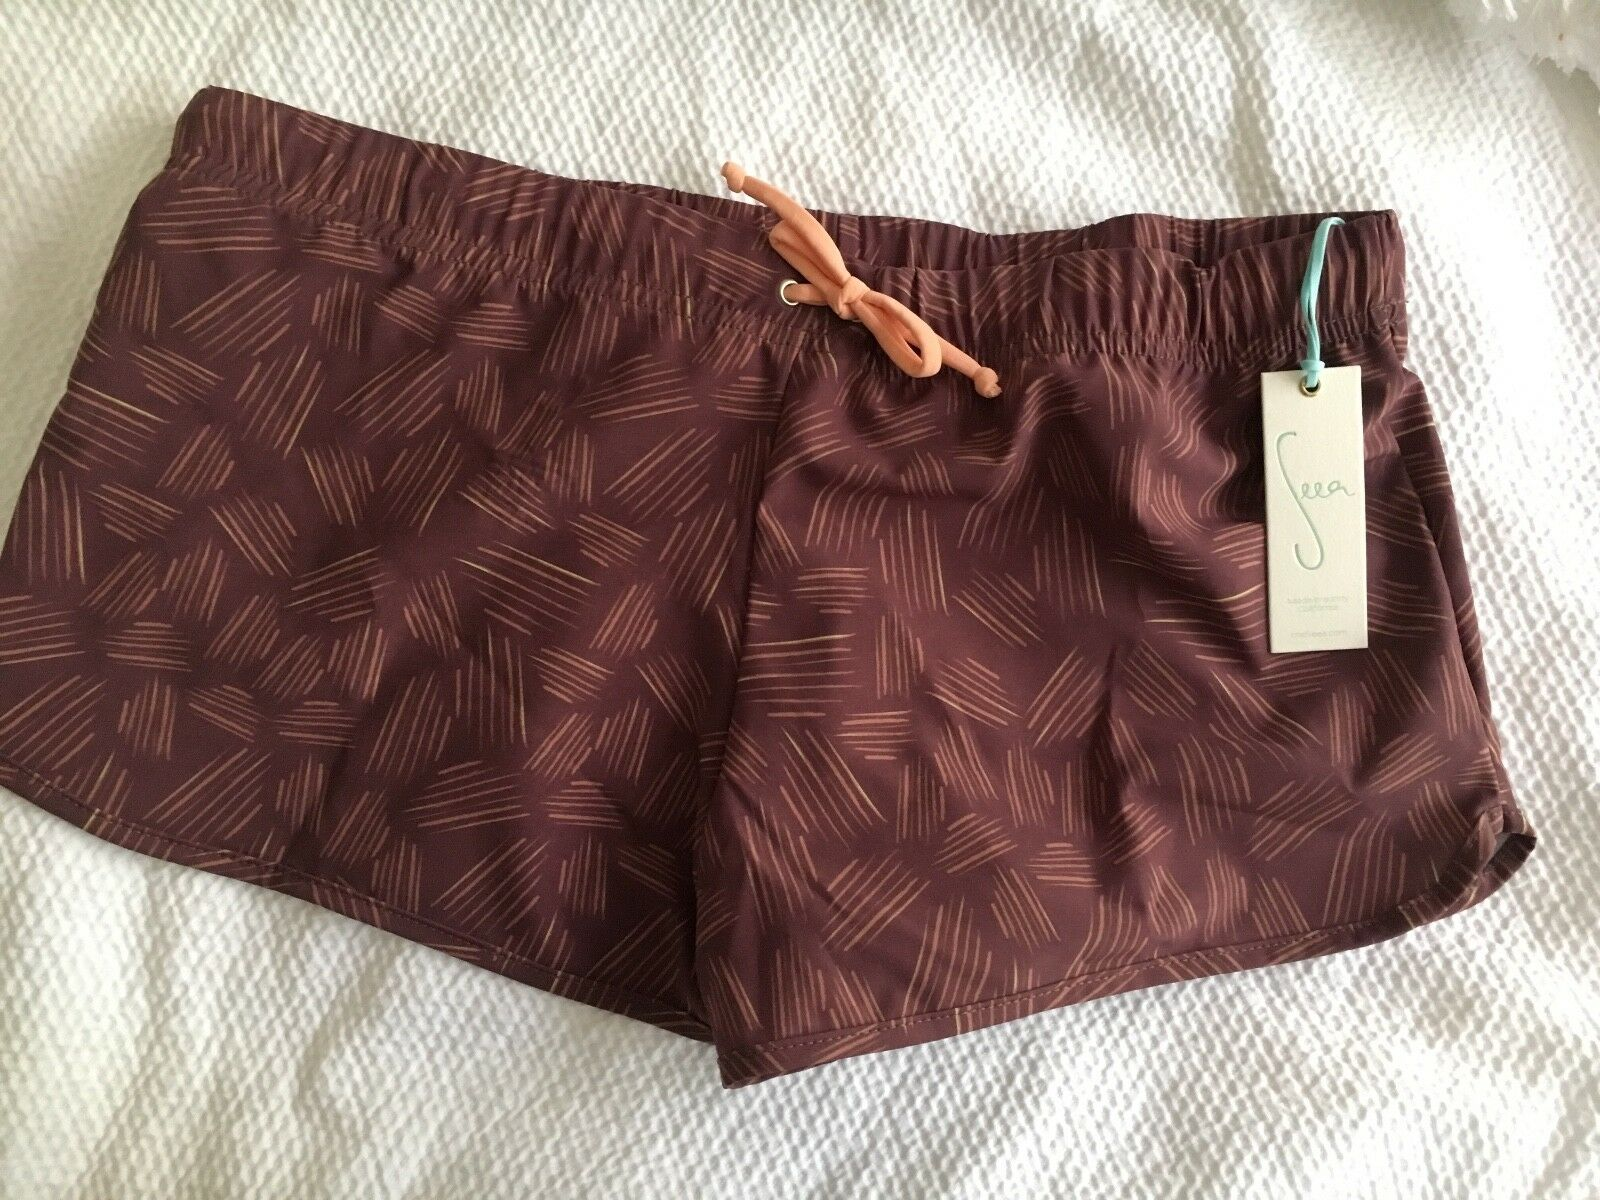 Women's Seea Board Shorts, Shorts, Shorts, Madras Shorts, Prarie pattern, swimwear, size medium 0d7bcb